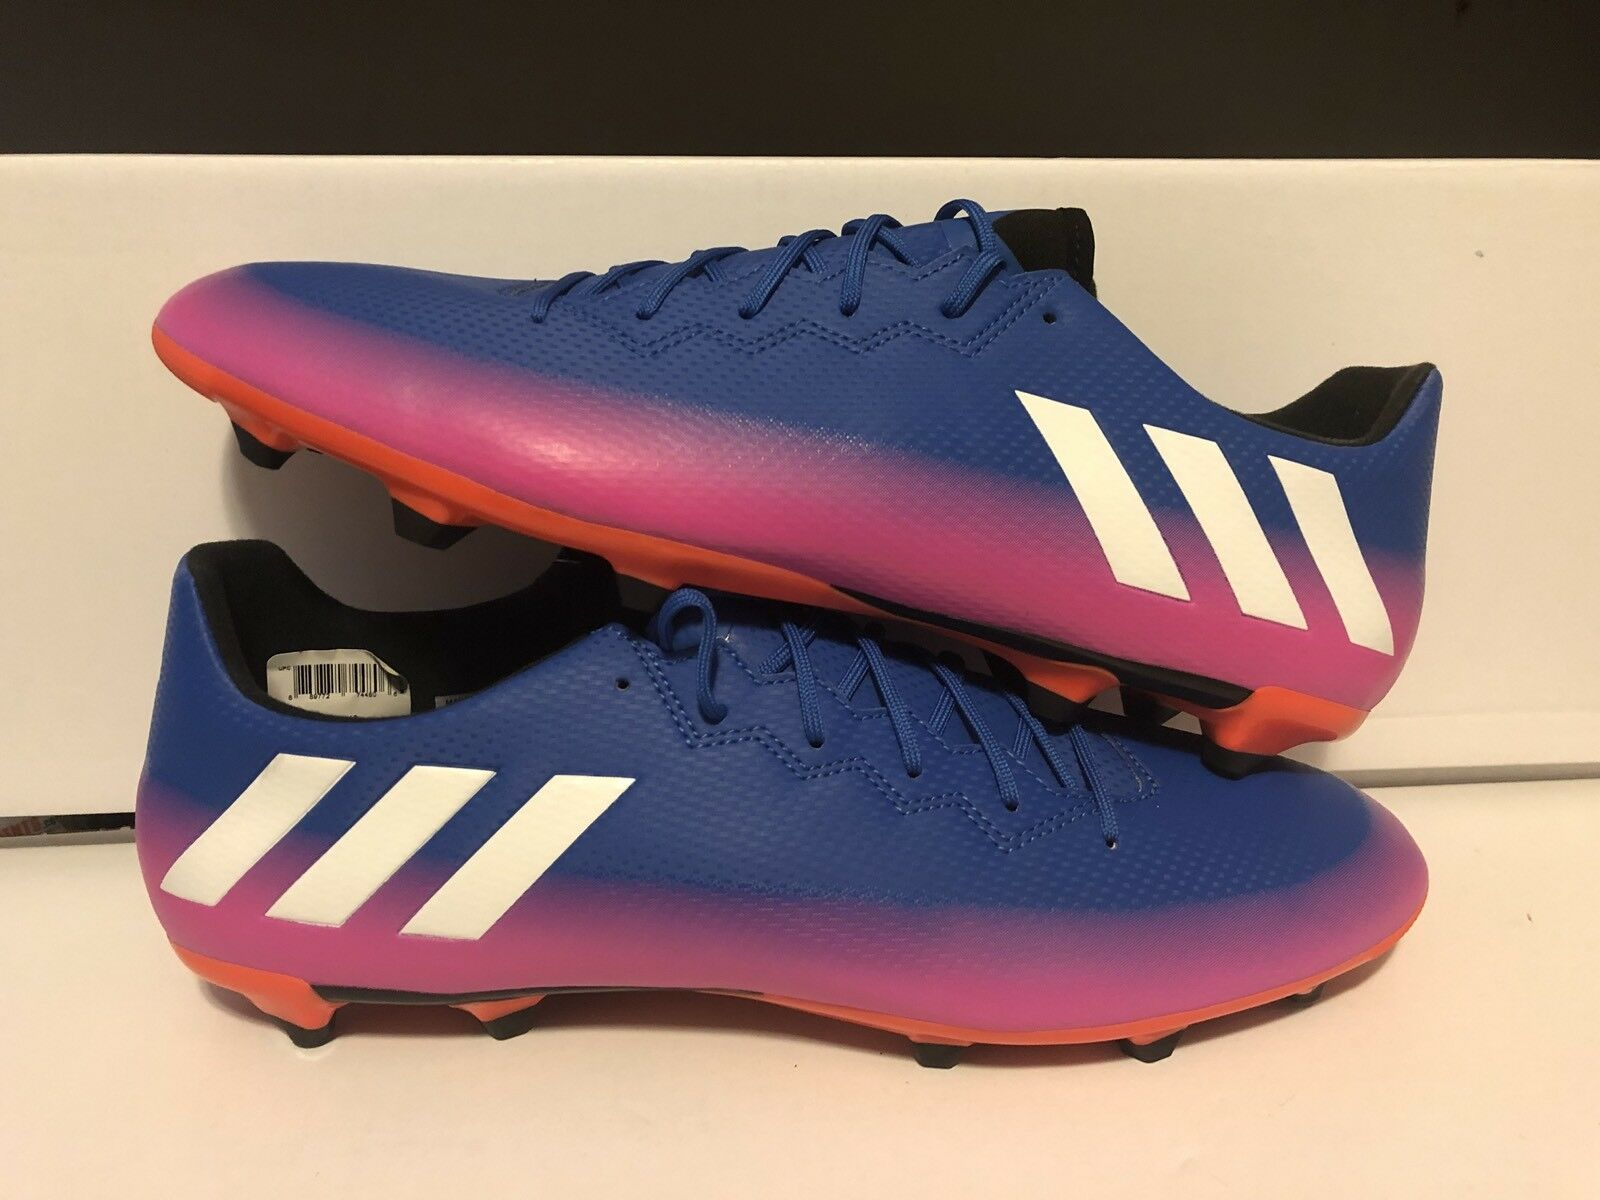 ae599d402de ADIDAS Messi 16.3 FG Ground Soccer Cleats Men s Size 13 Brand NEW Firm  nudkws5885-Men